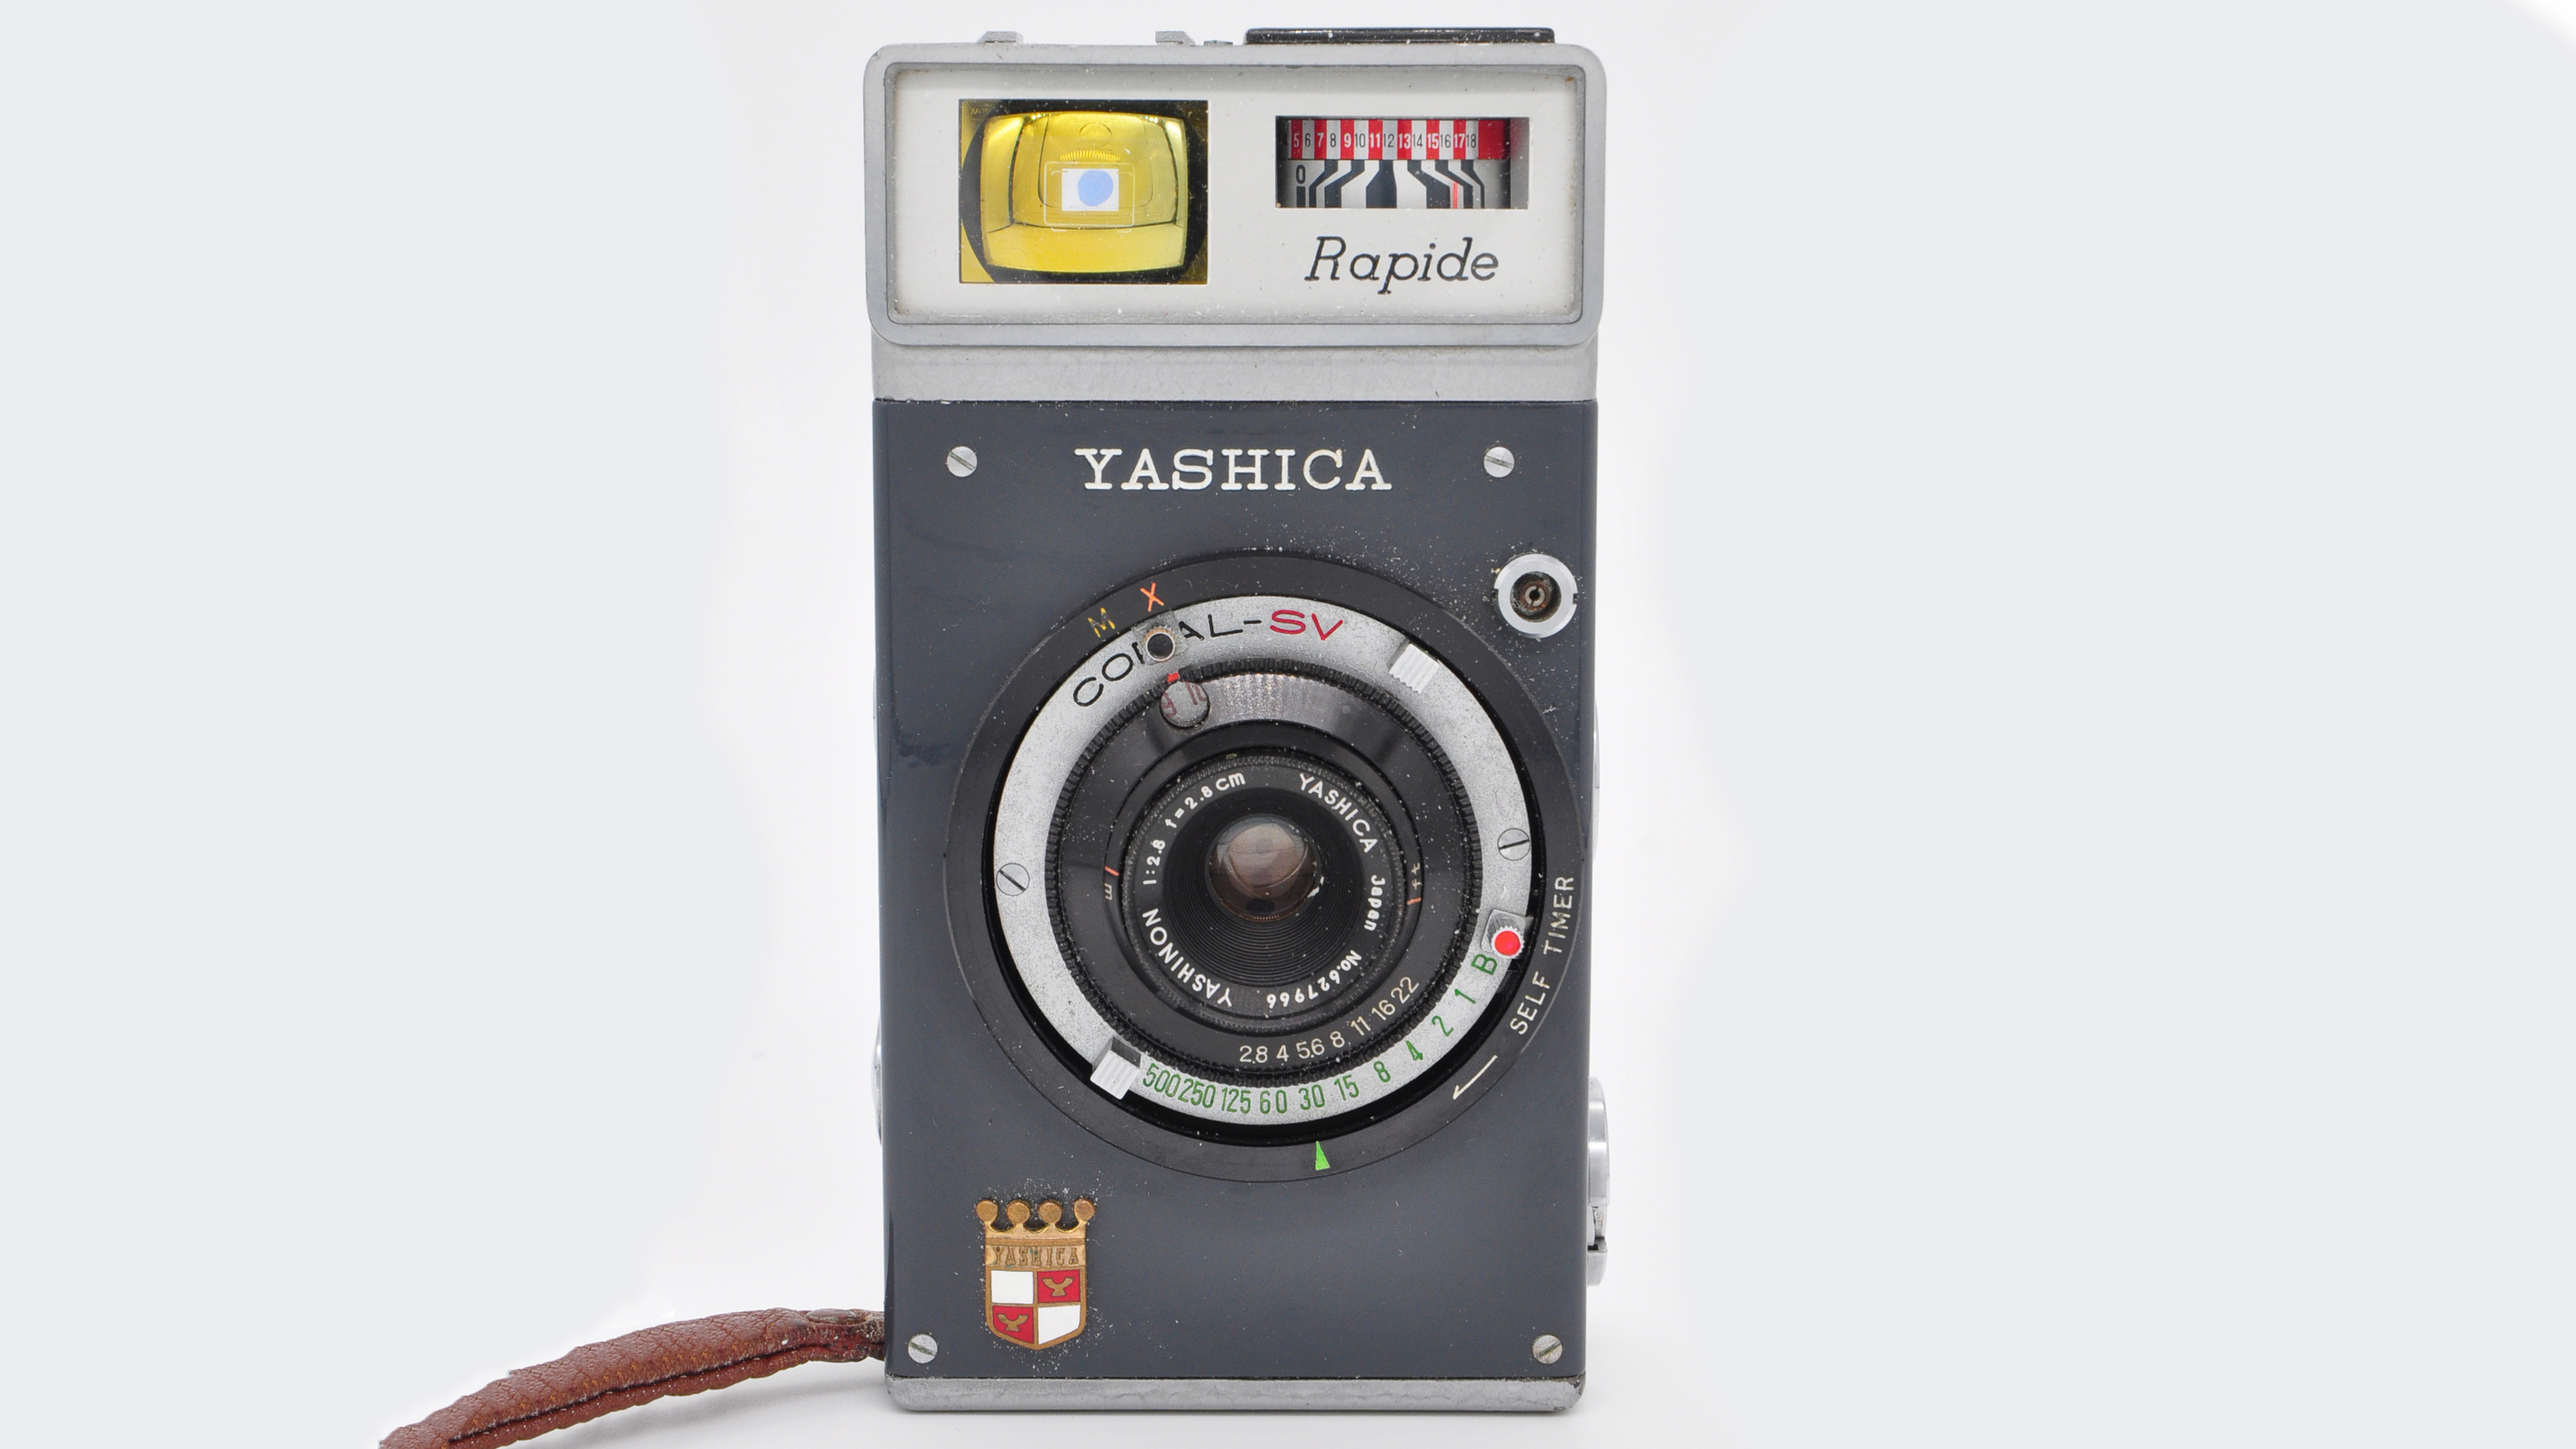 The front of the Yashica Rapide camera